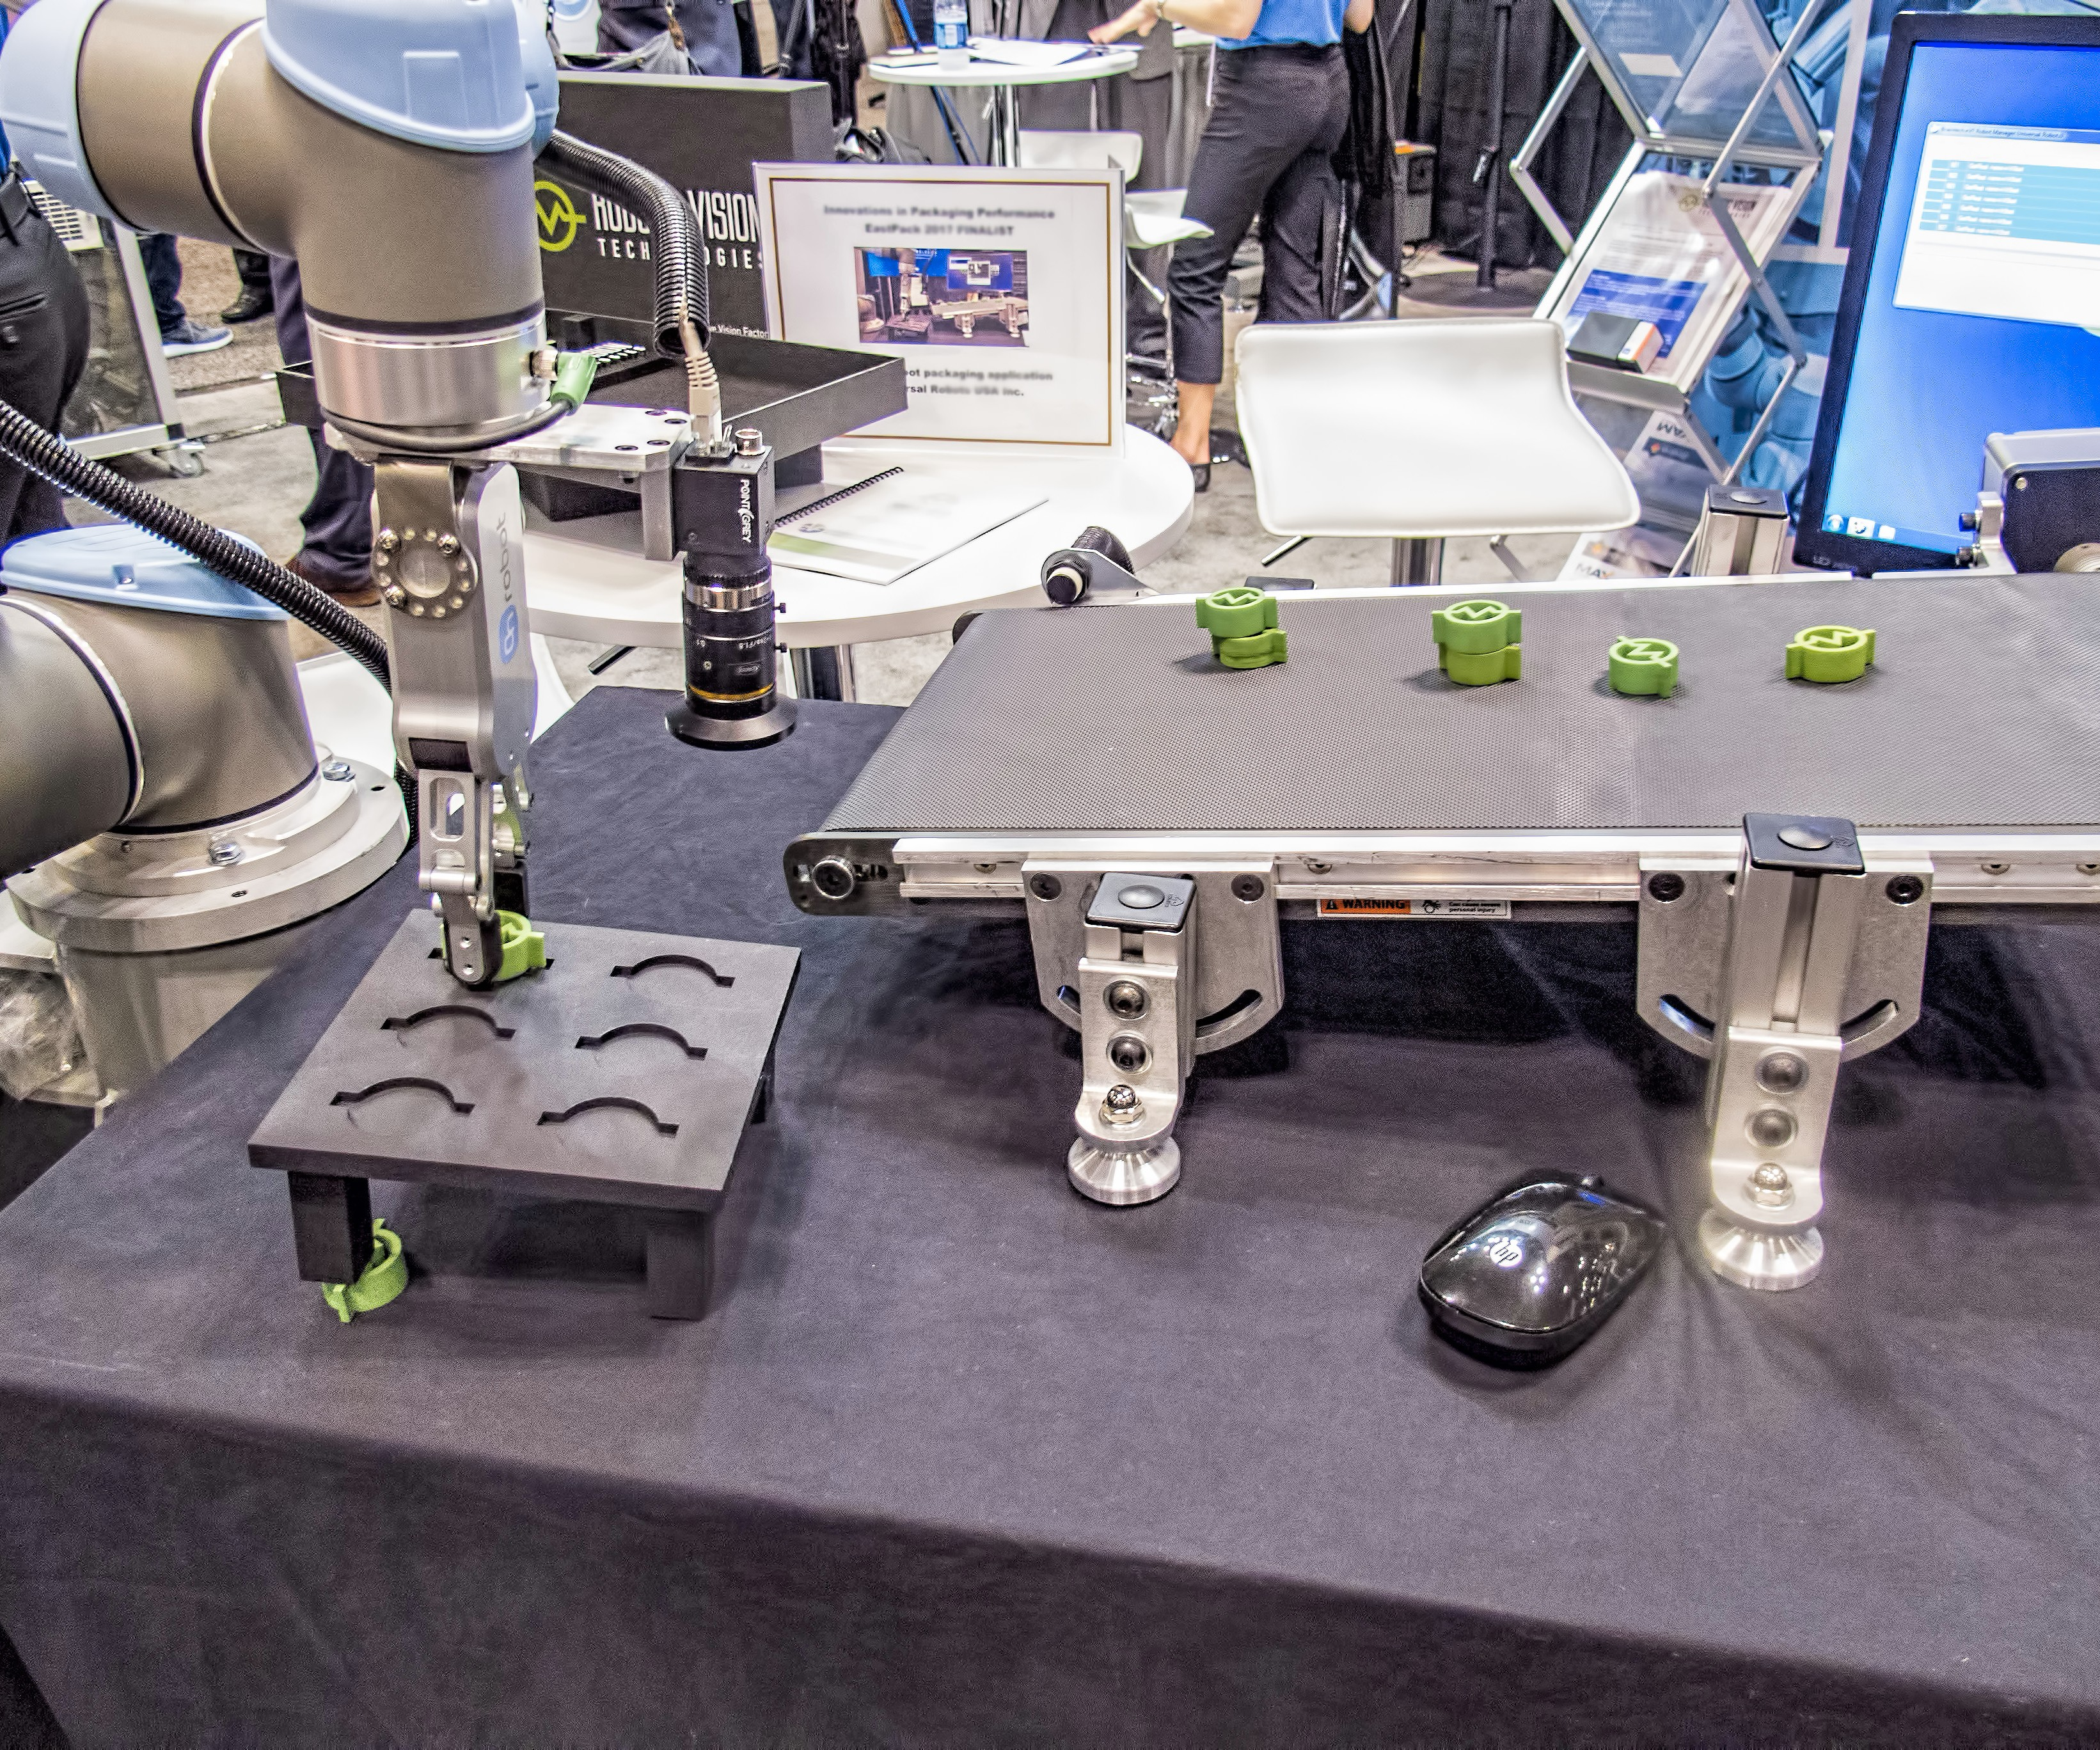 vision capabilities for Universal Robots